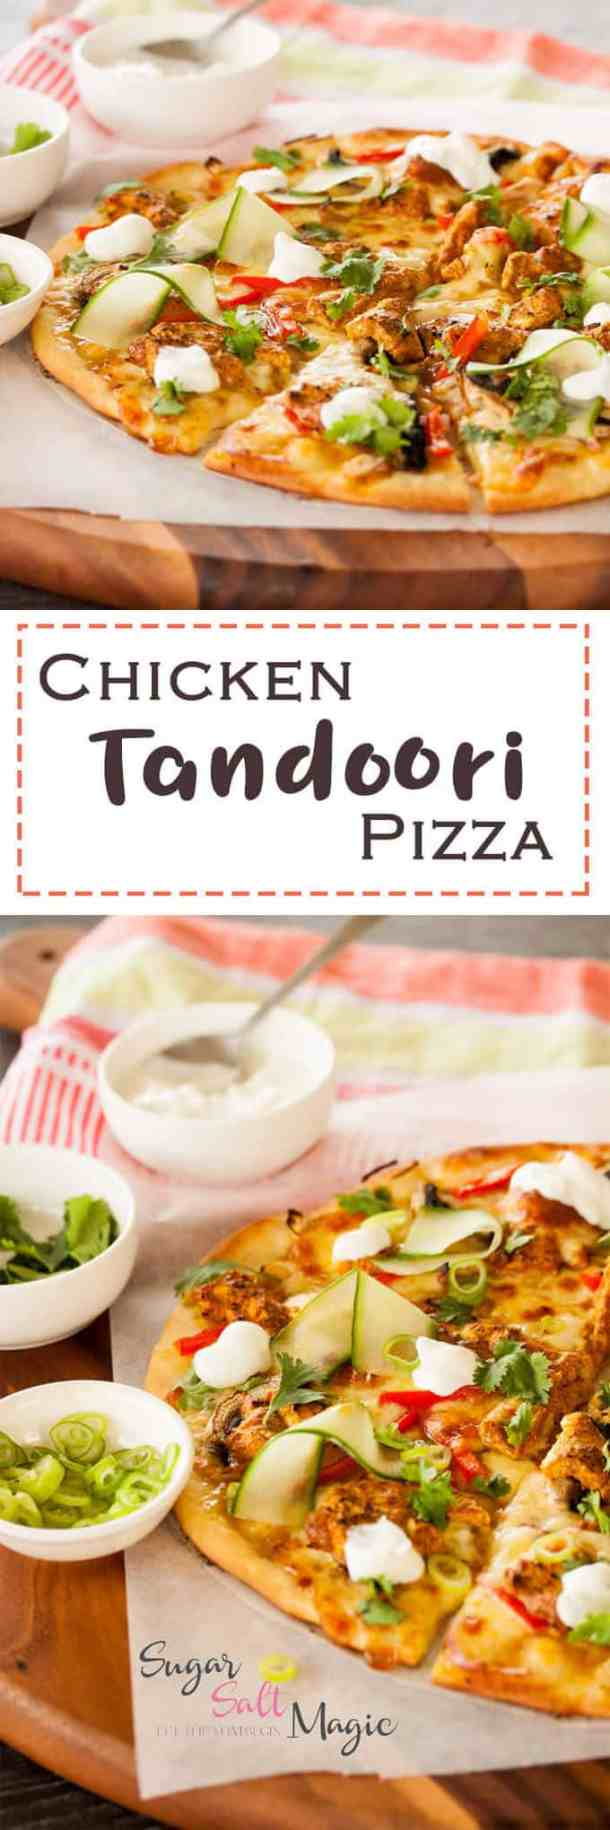 Tandoori Chicken Pizza by Sugar Salt Magic. Juicy chunks of Tandoori Chicken and a homemade crust combine to make this amazing pizza.